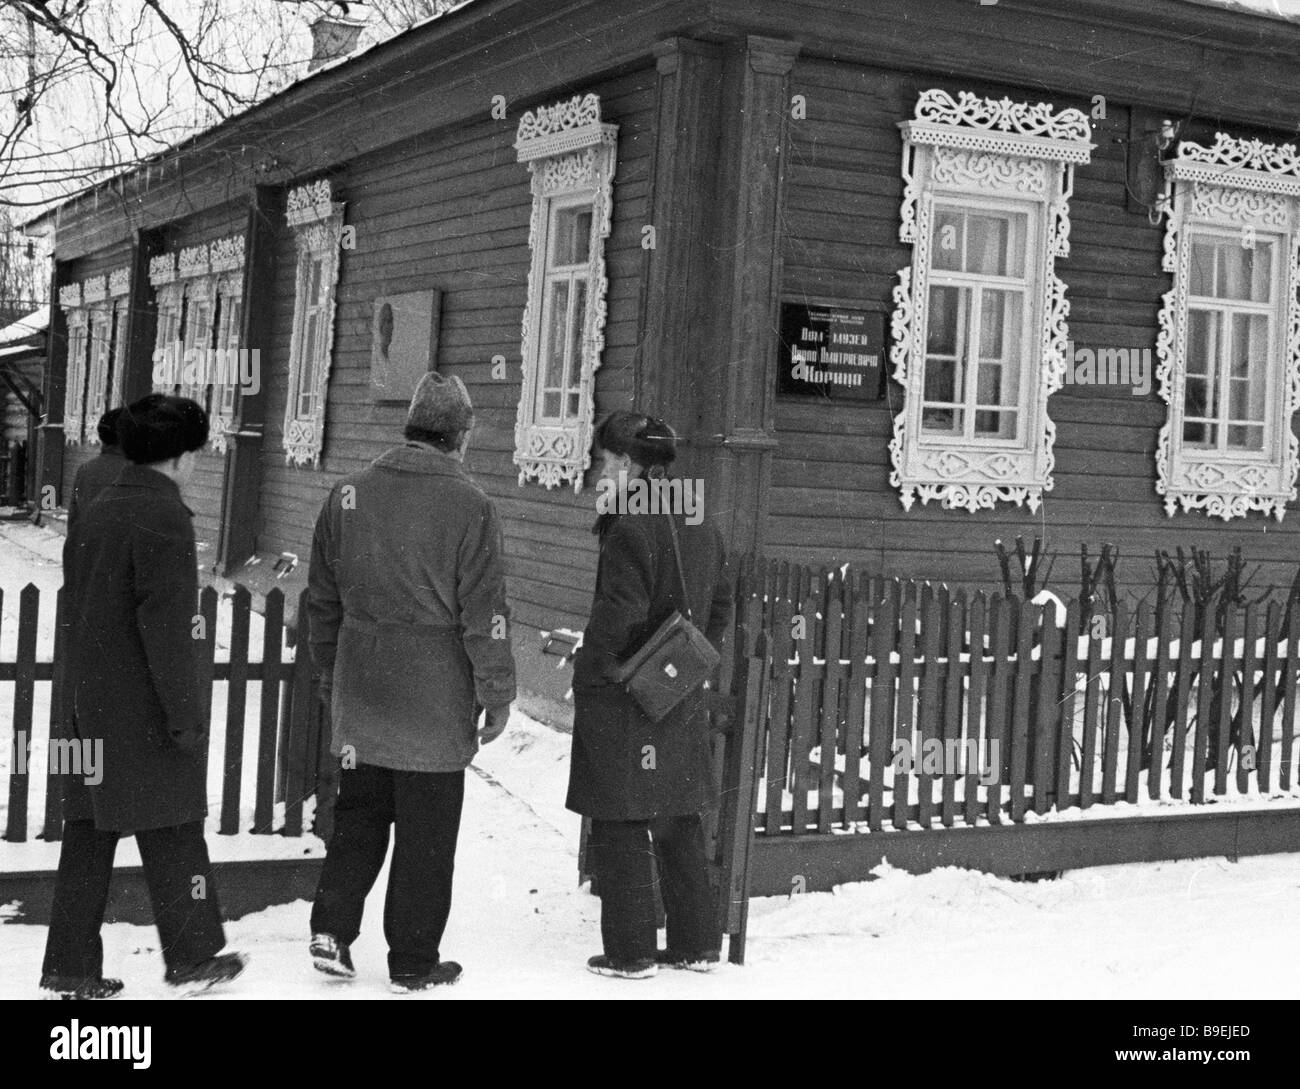 The Merited Soviet artist Pavel Korin lived in this house in the village of Palekh - Stock Image